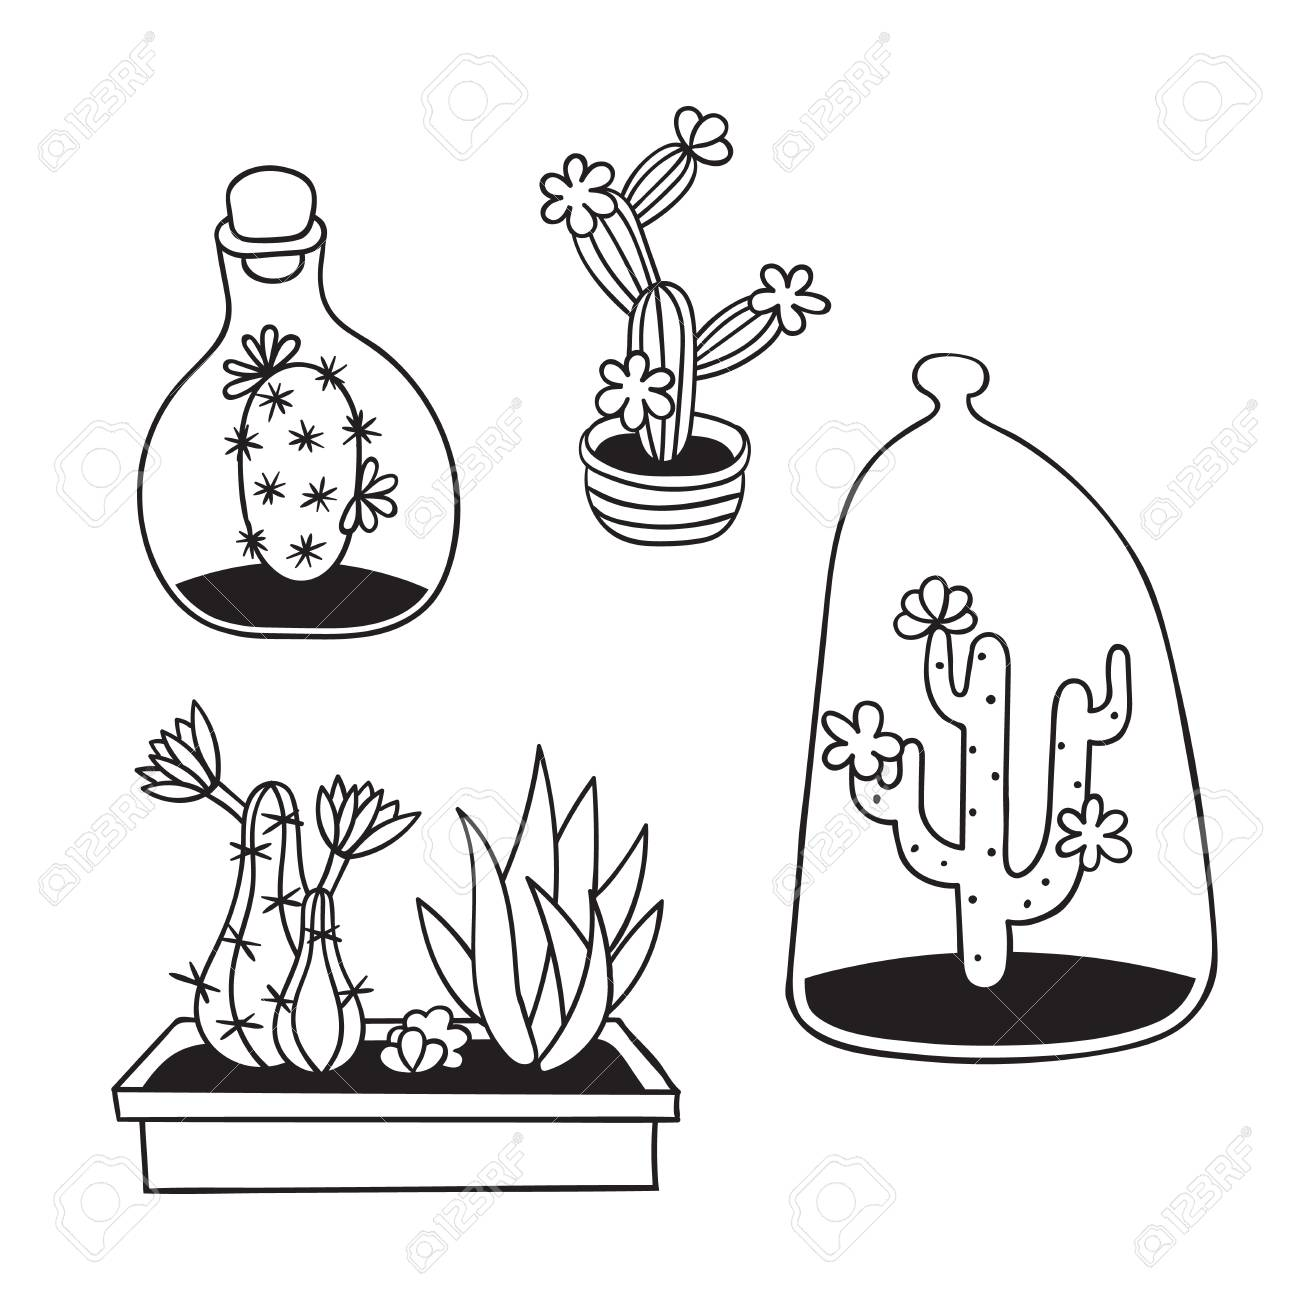 Set Of Cactuses With Flowers In Terrariums And Pots For Coloring Royalty Free Cliparts Vectors And Stock Illustration Image 120458836